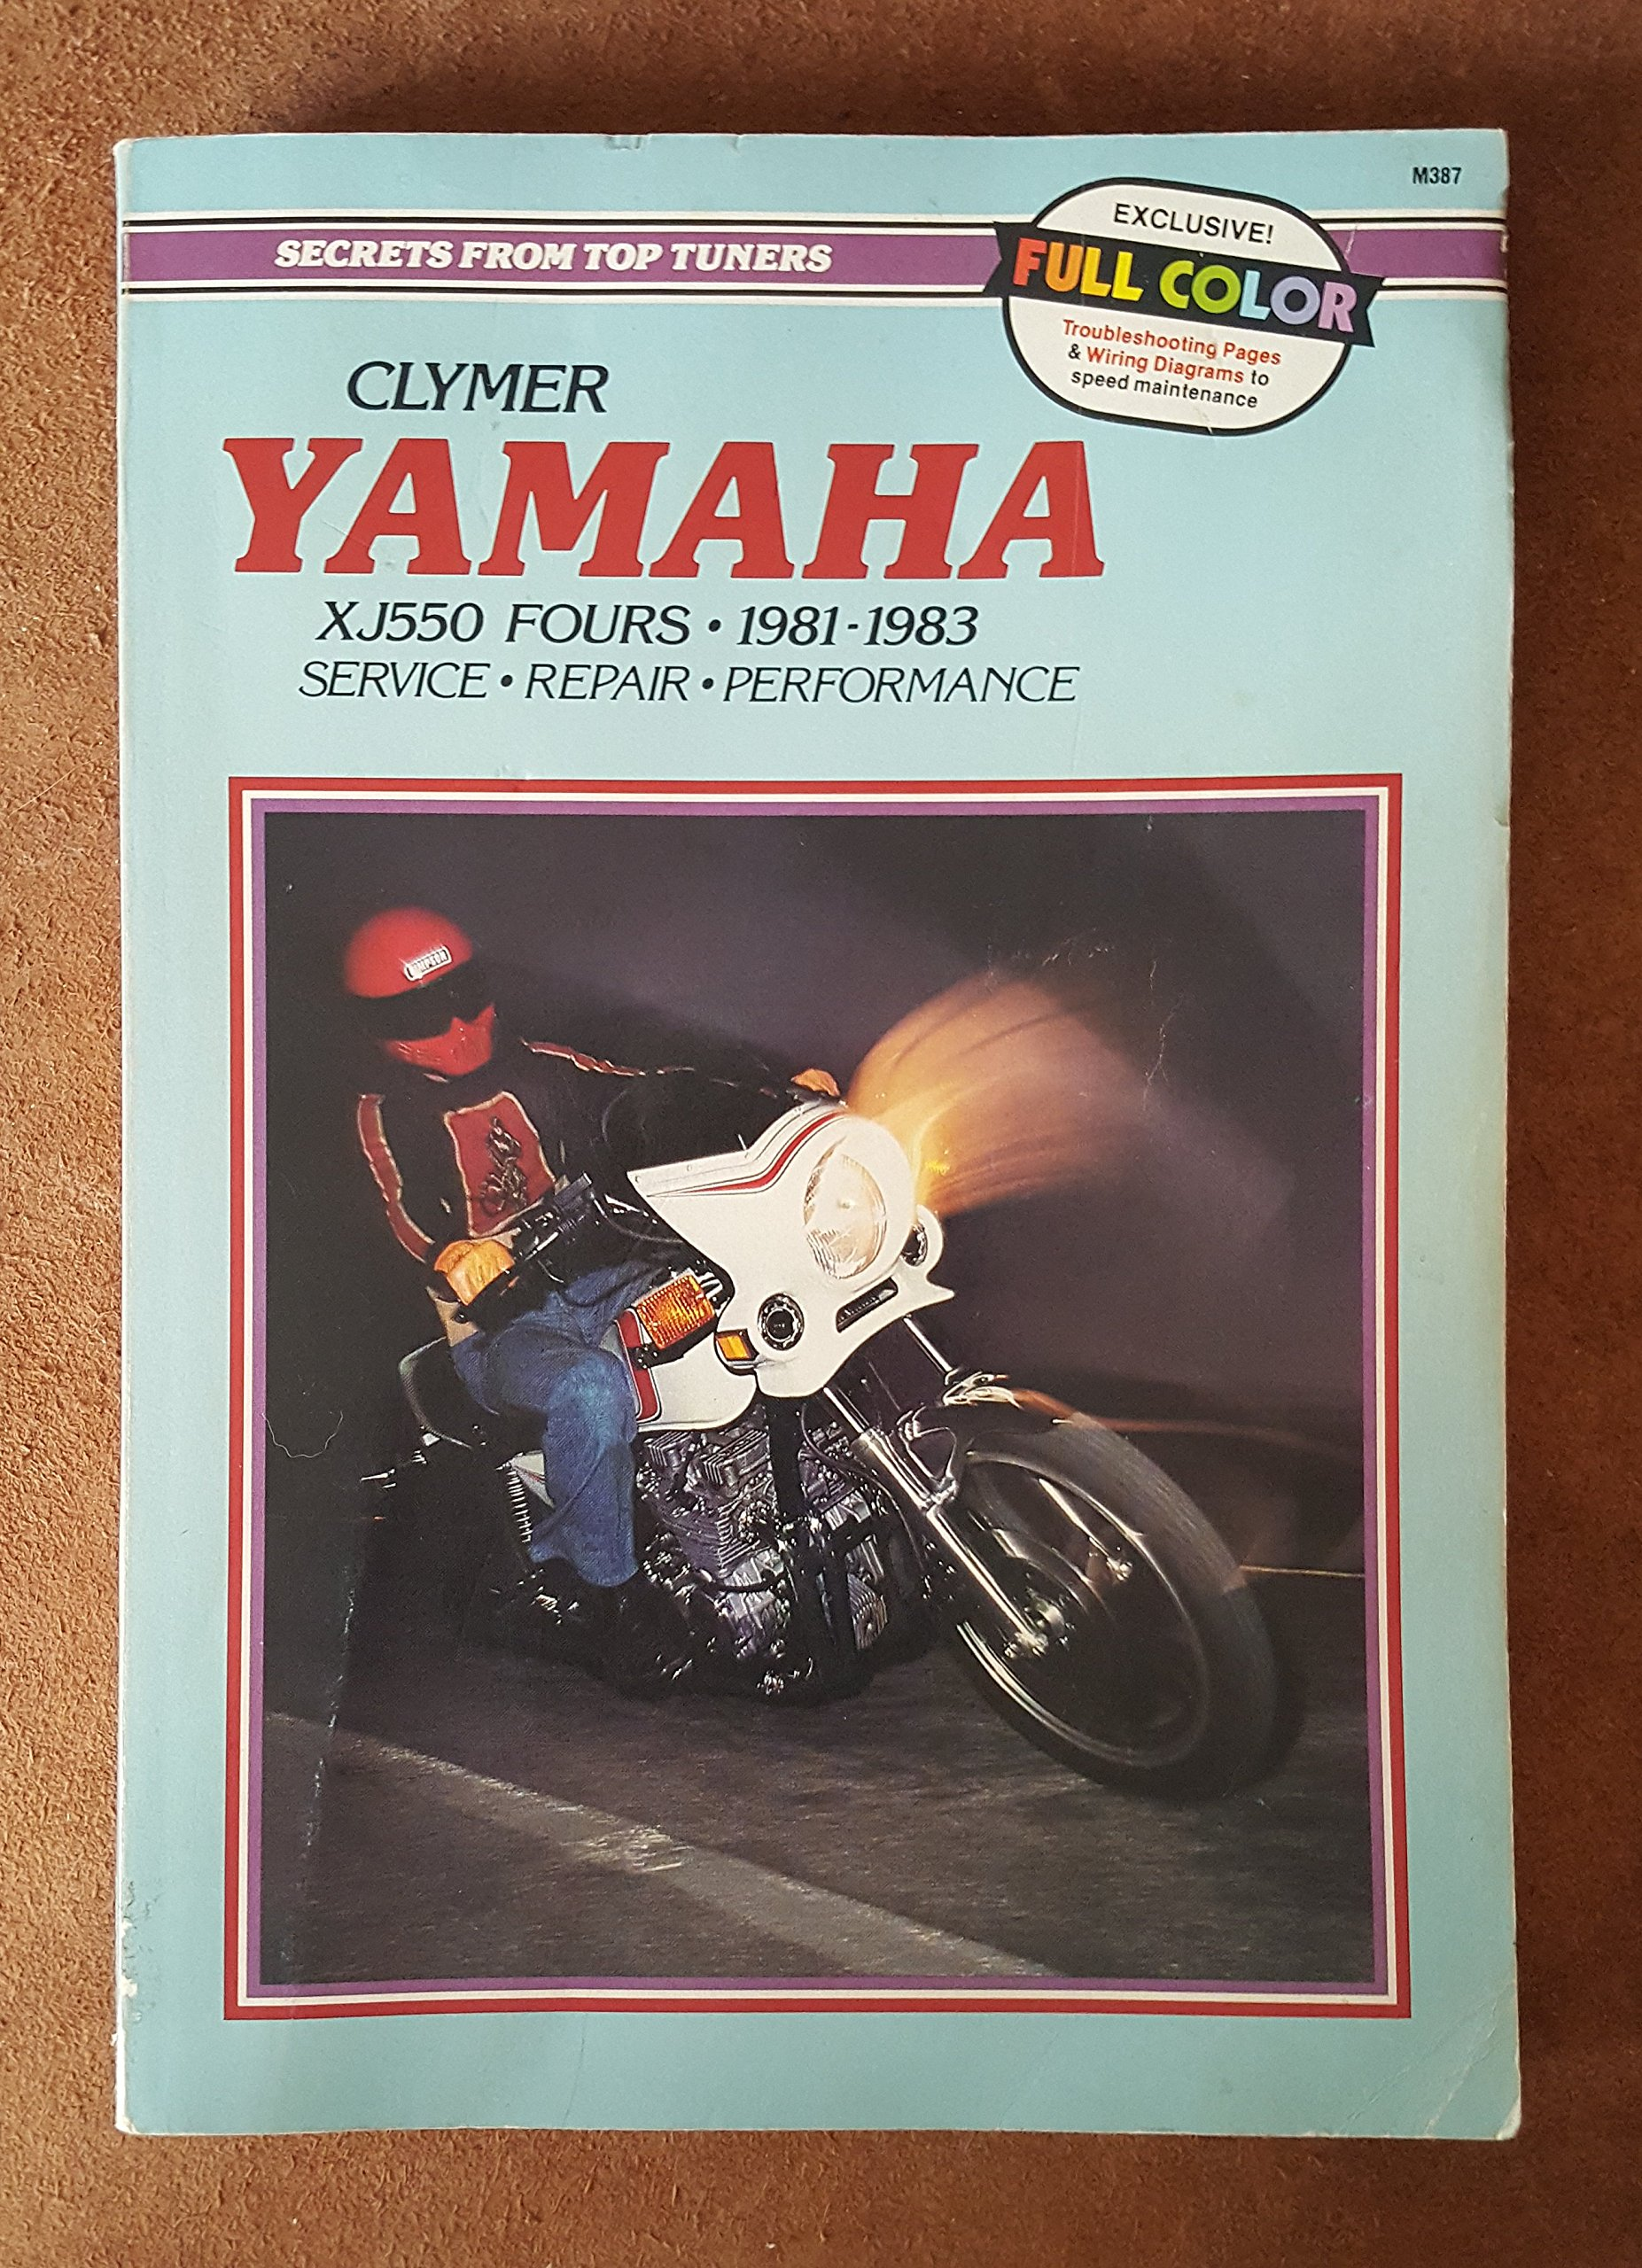 Clymer Yamaha Xj550 Fours 1981 1983 Service Repair Performance Wiring Diagram Ron Wright Sydnie A Wayson Books